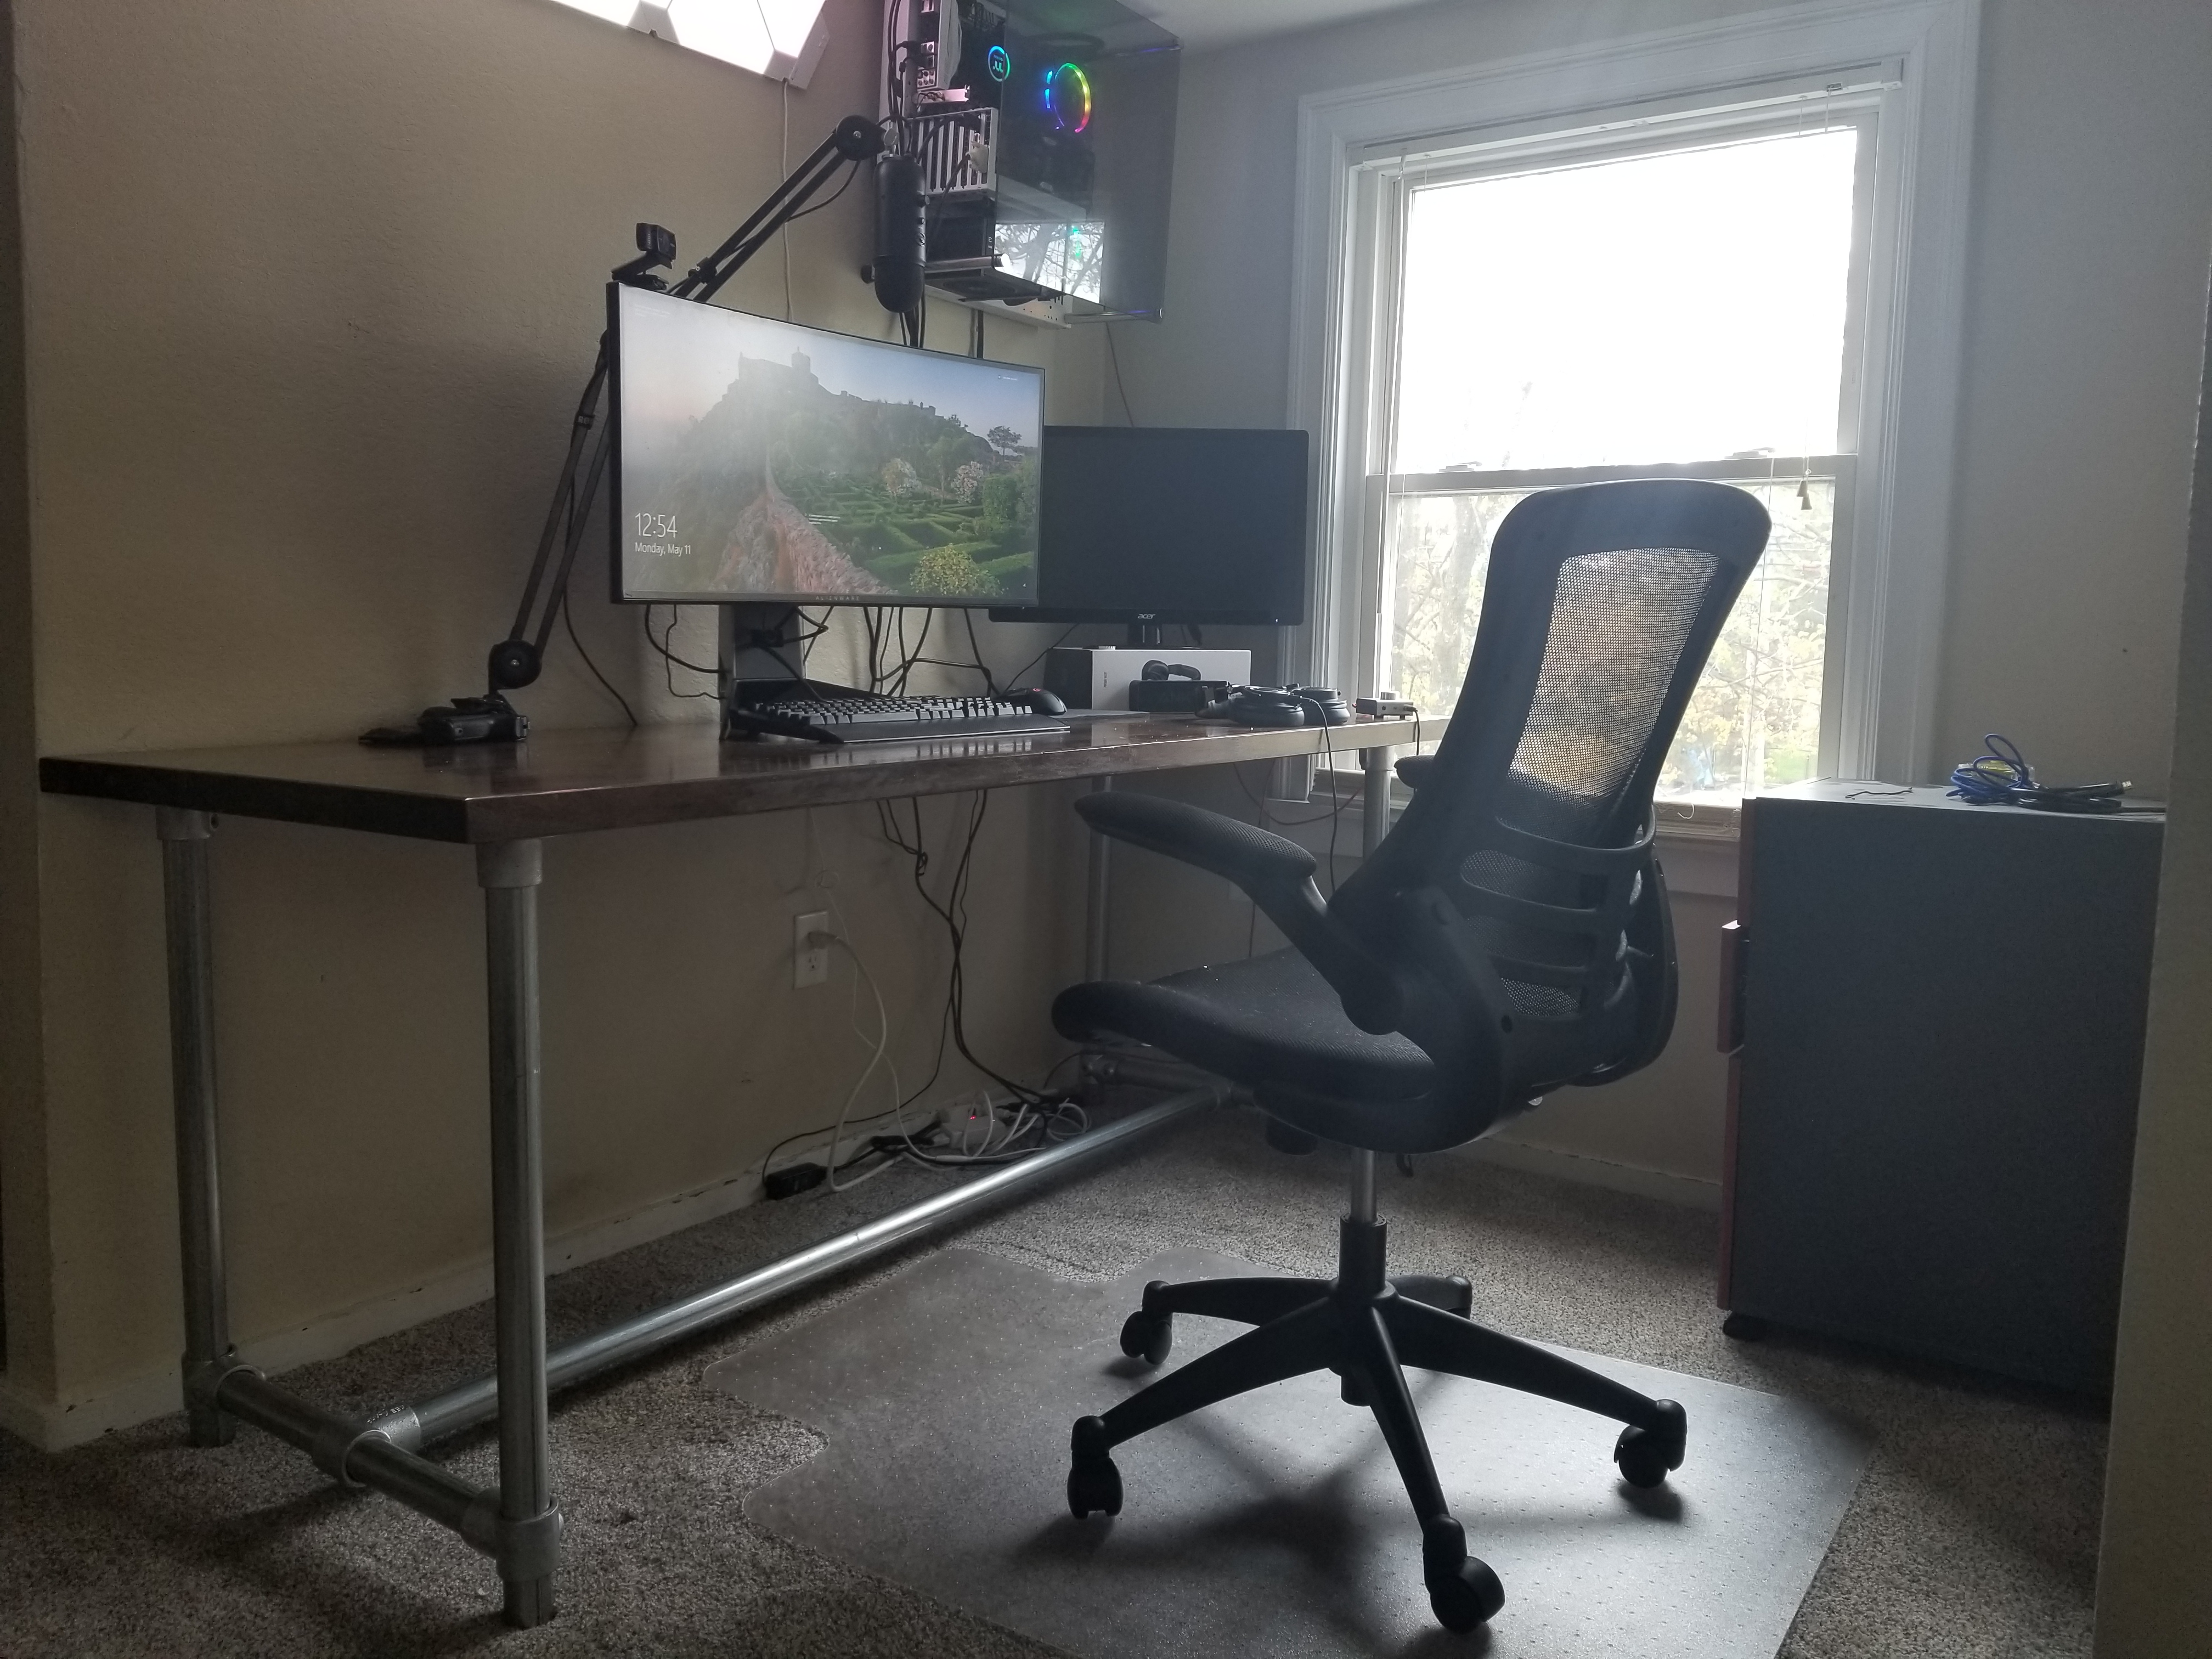 Finished Desk Project